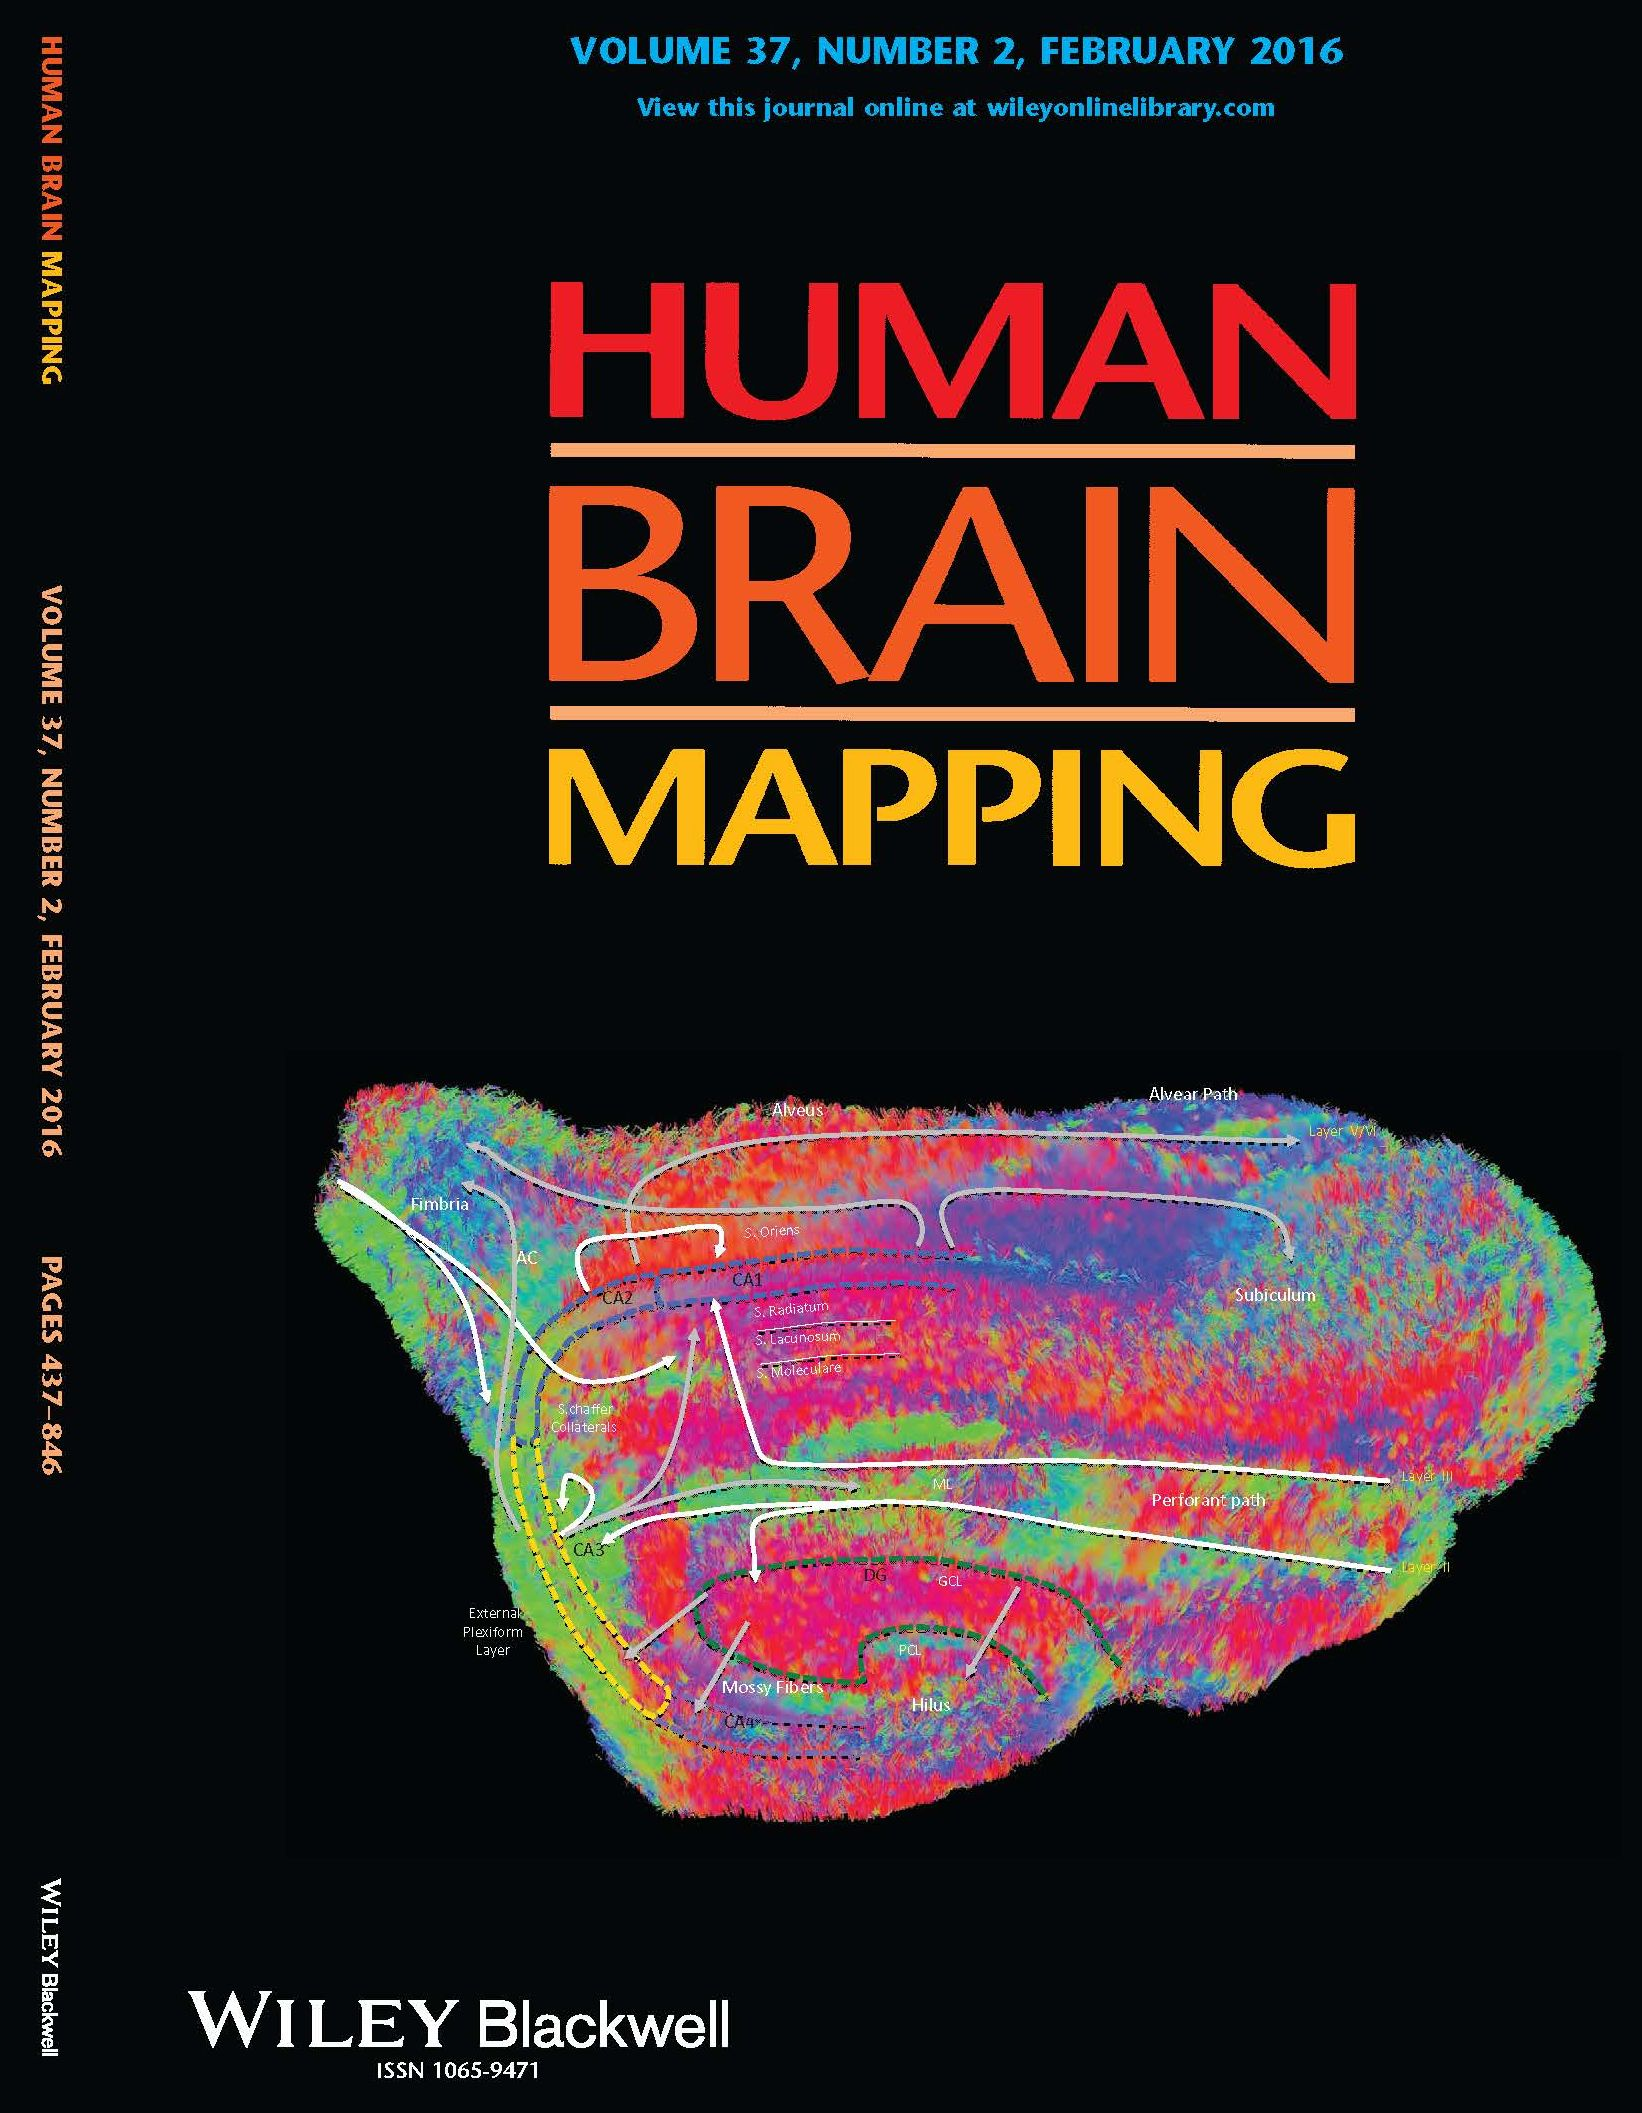 Human Brain Mapping Dr. Modo's Image on Human Brain Mapping Journal | Department of  Human Brain Mapping